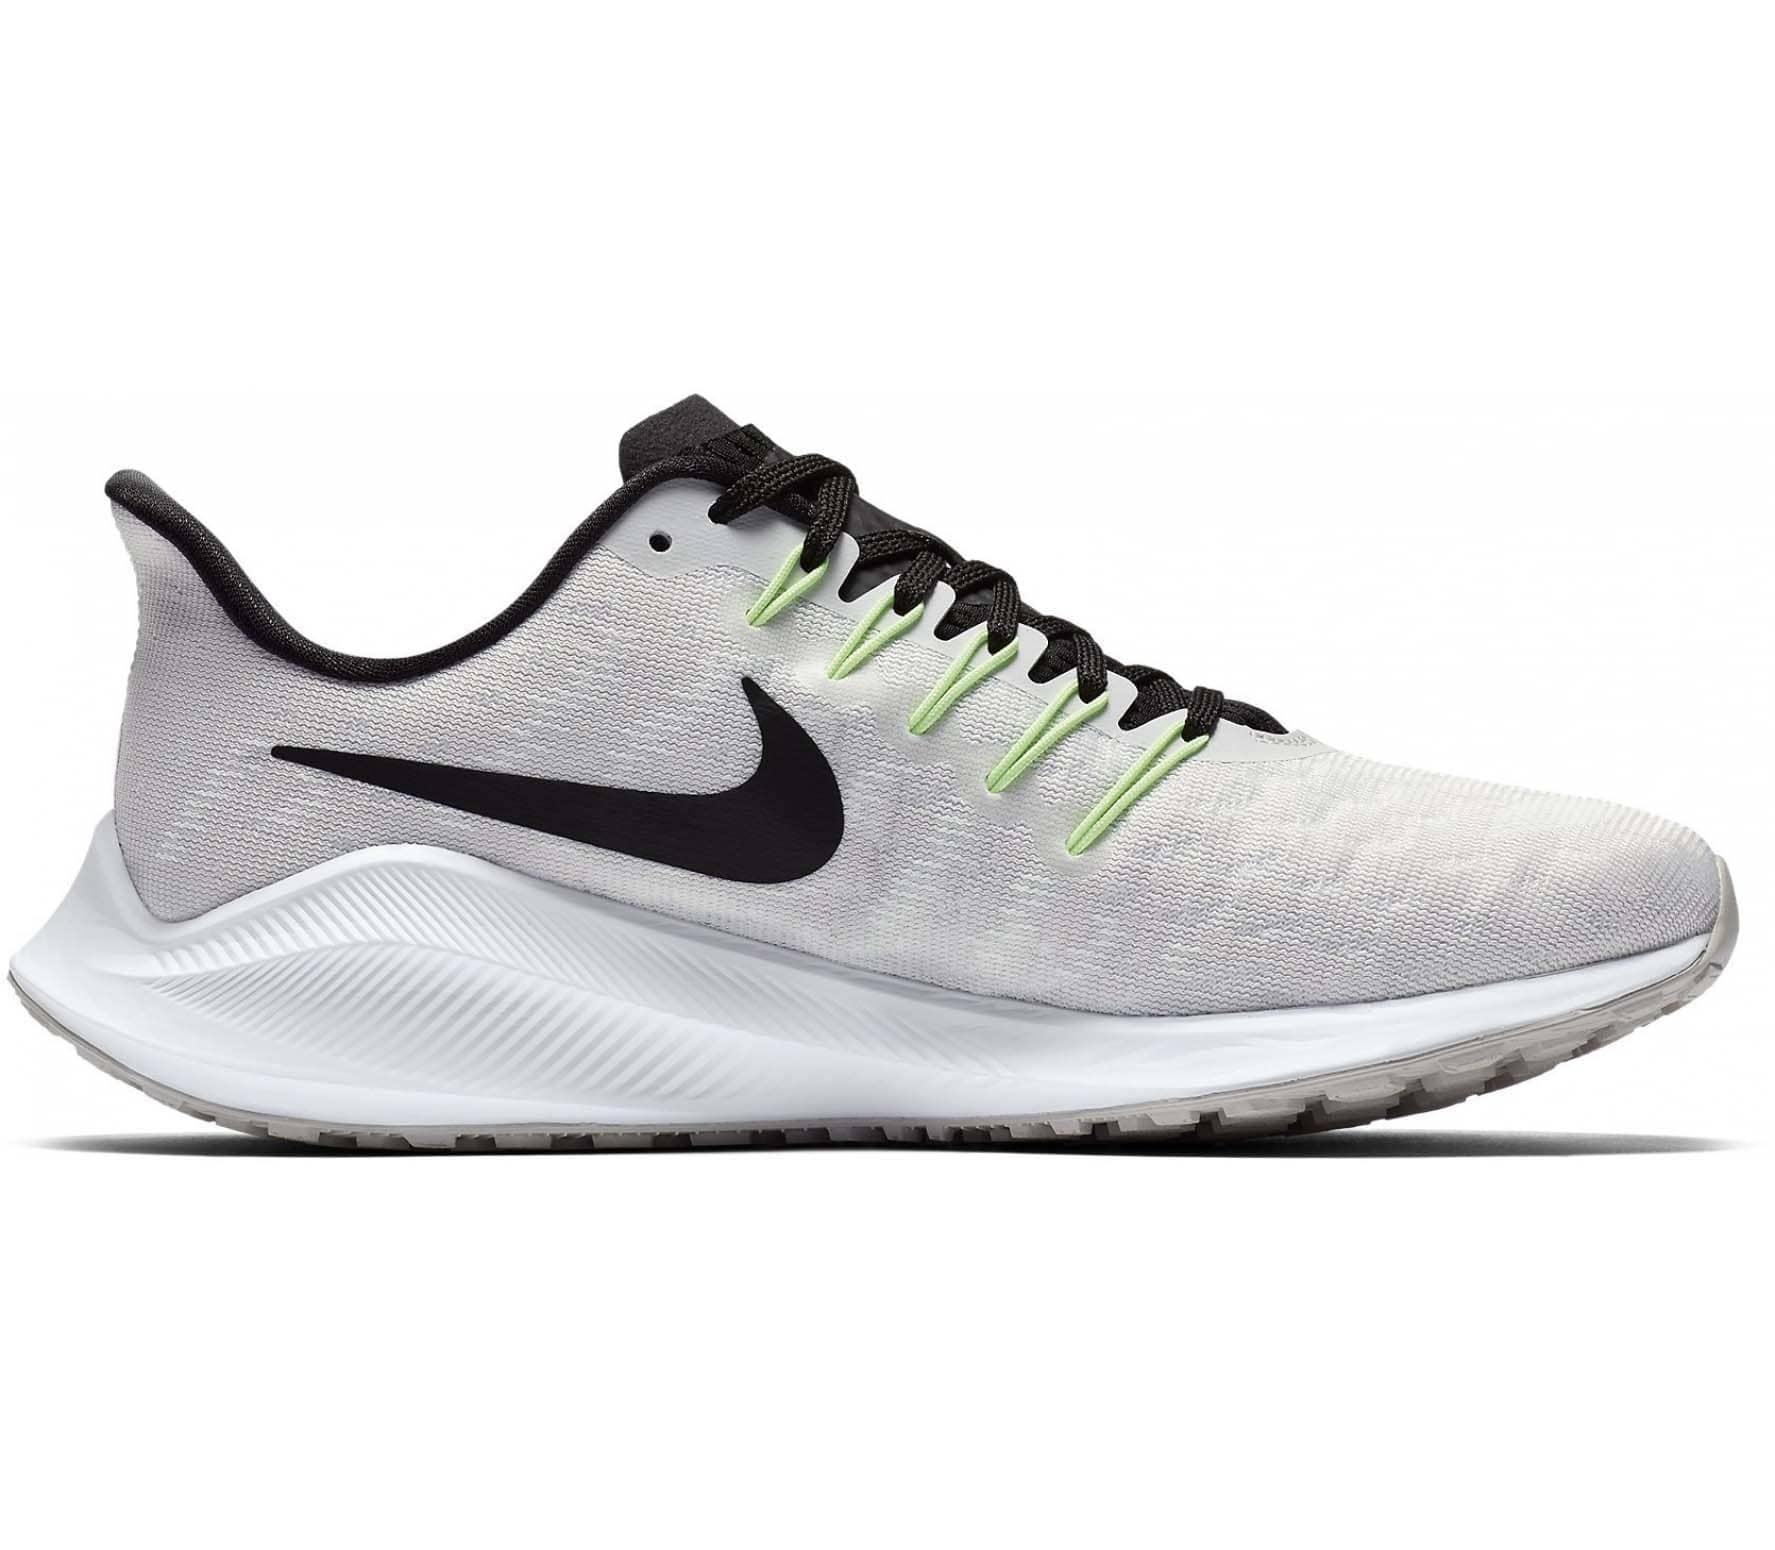 huge selection of 3c884 bd258 Nike - Air Zoom Vomero 14 zapatillas de running para mujer (blanco)